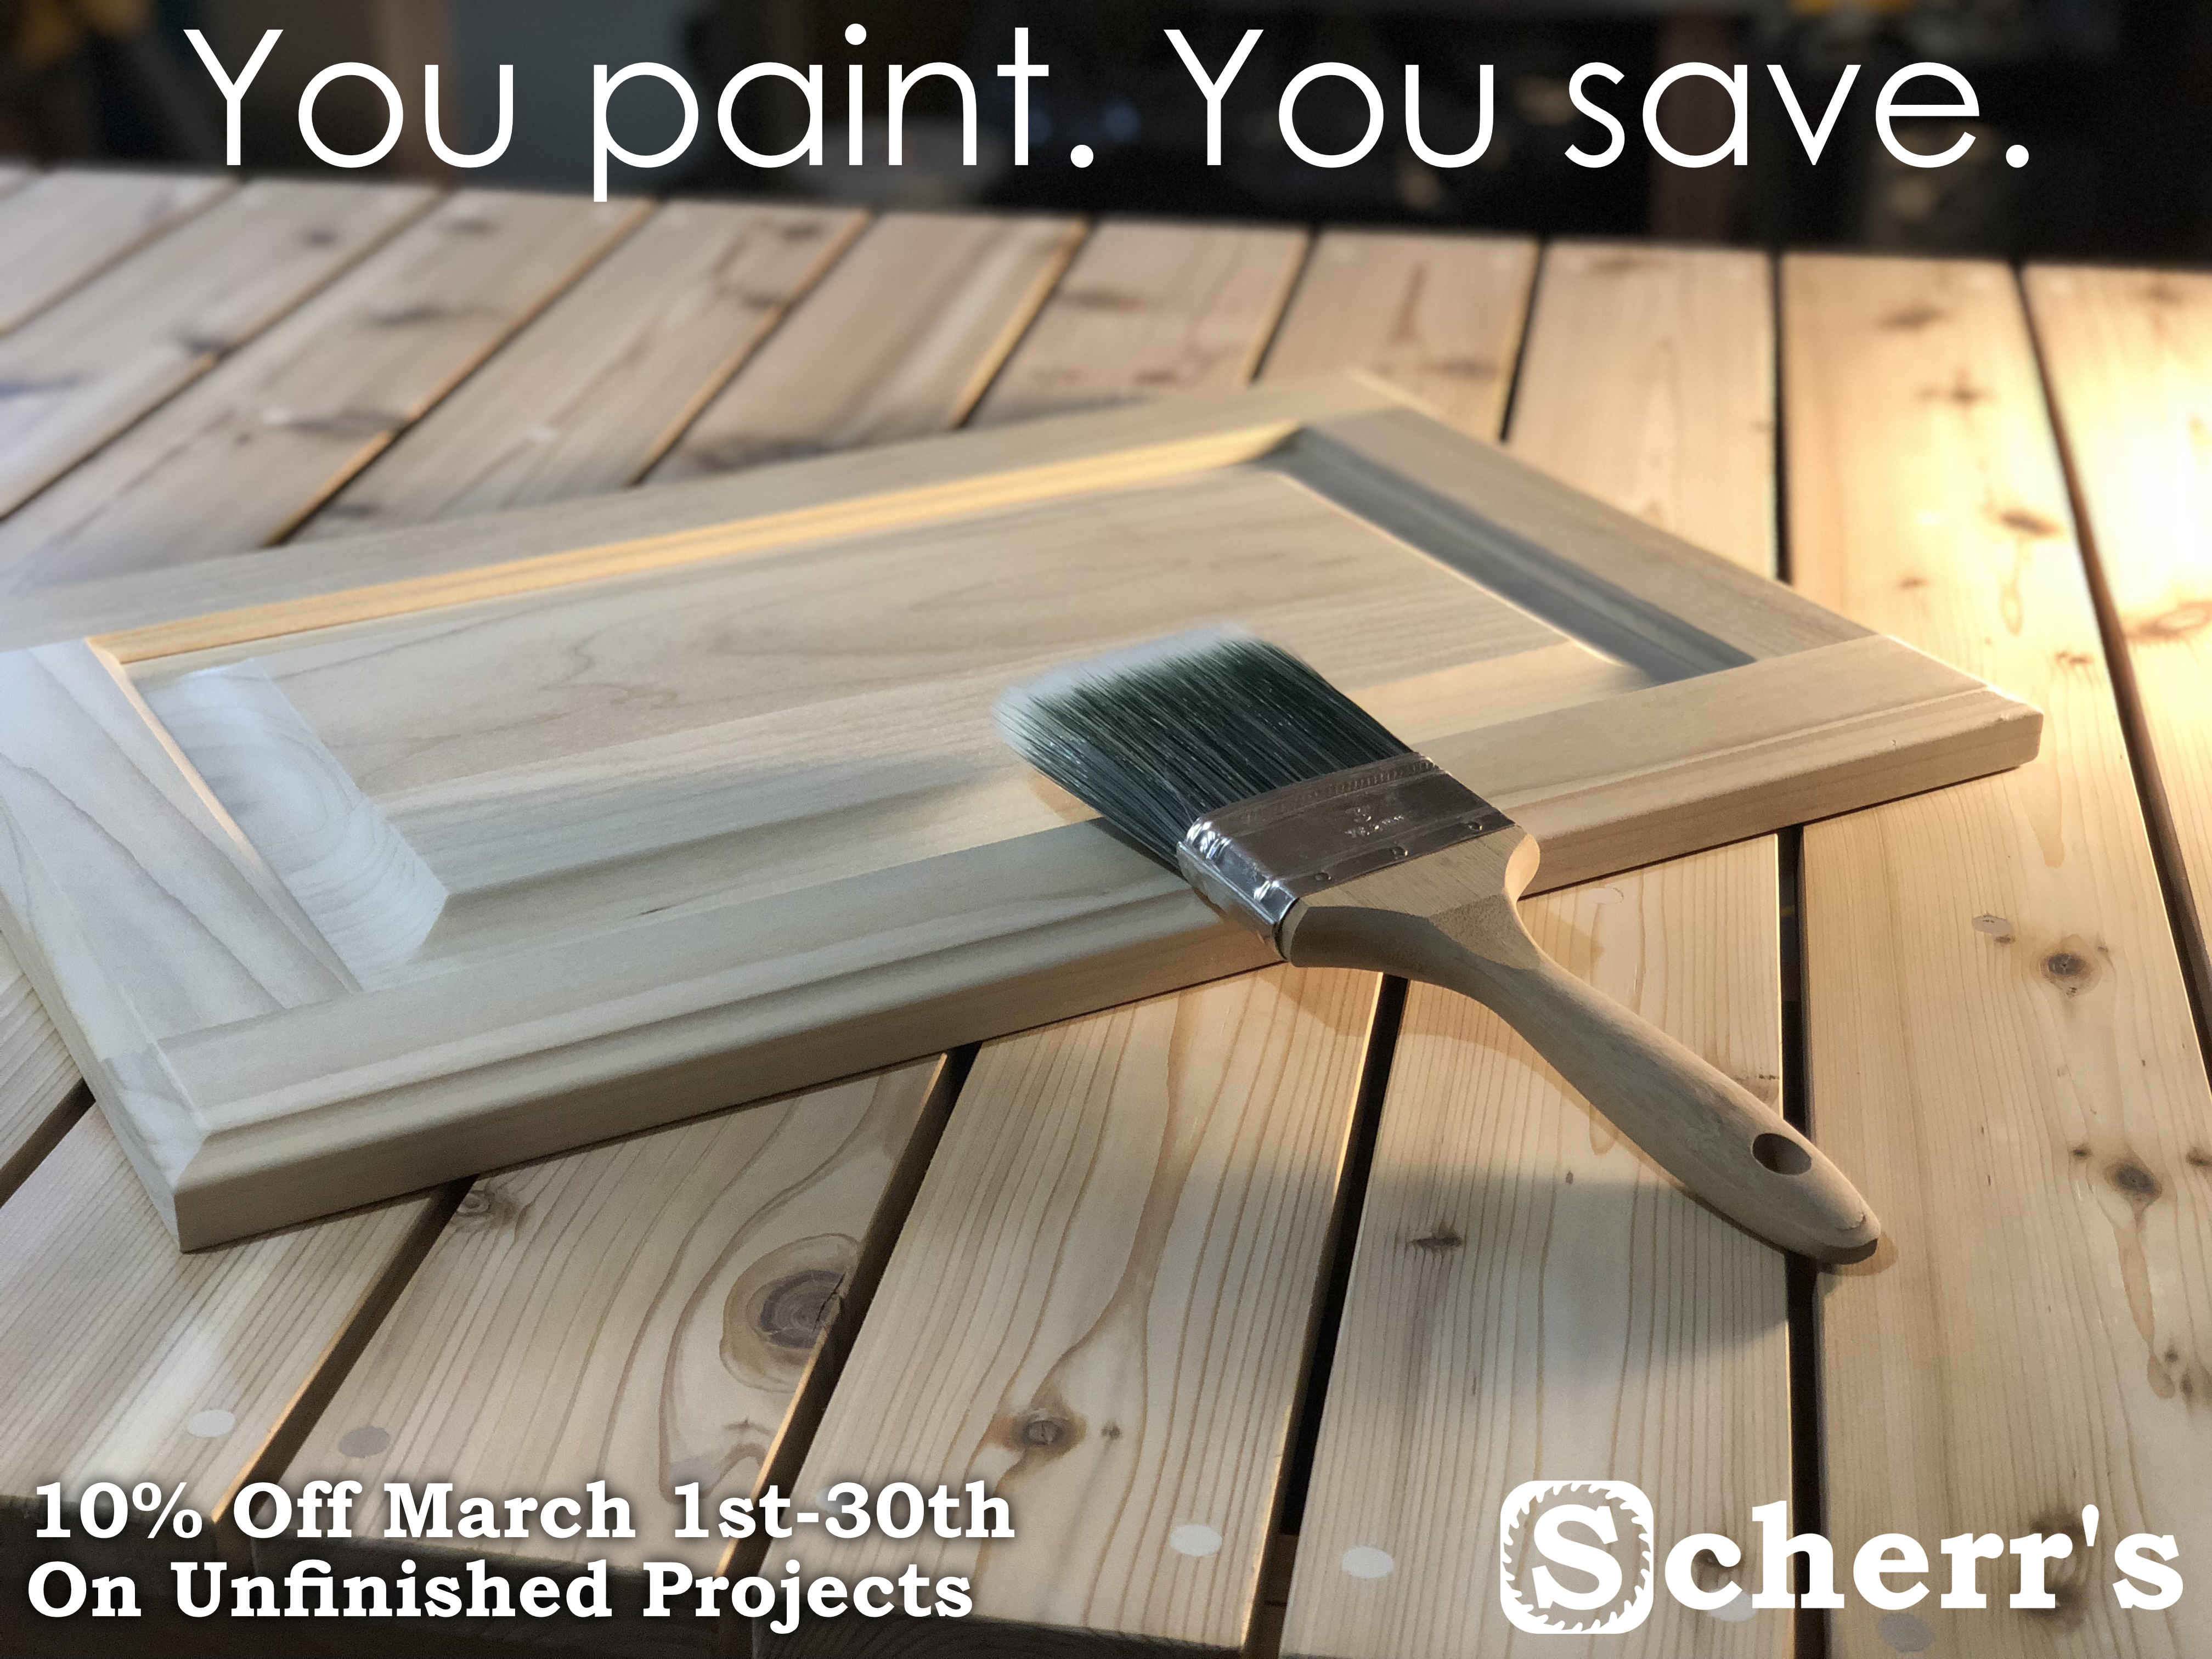 You Paint. You Save! Sale - March 2018